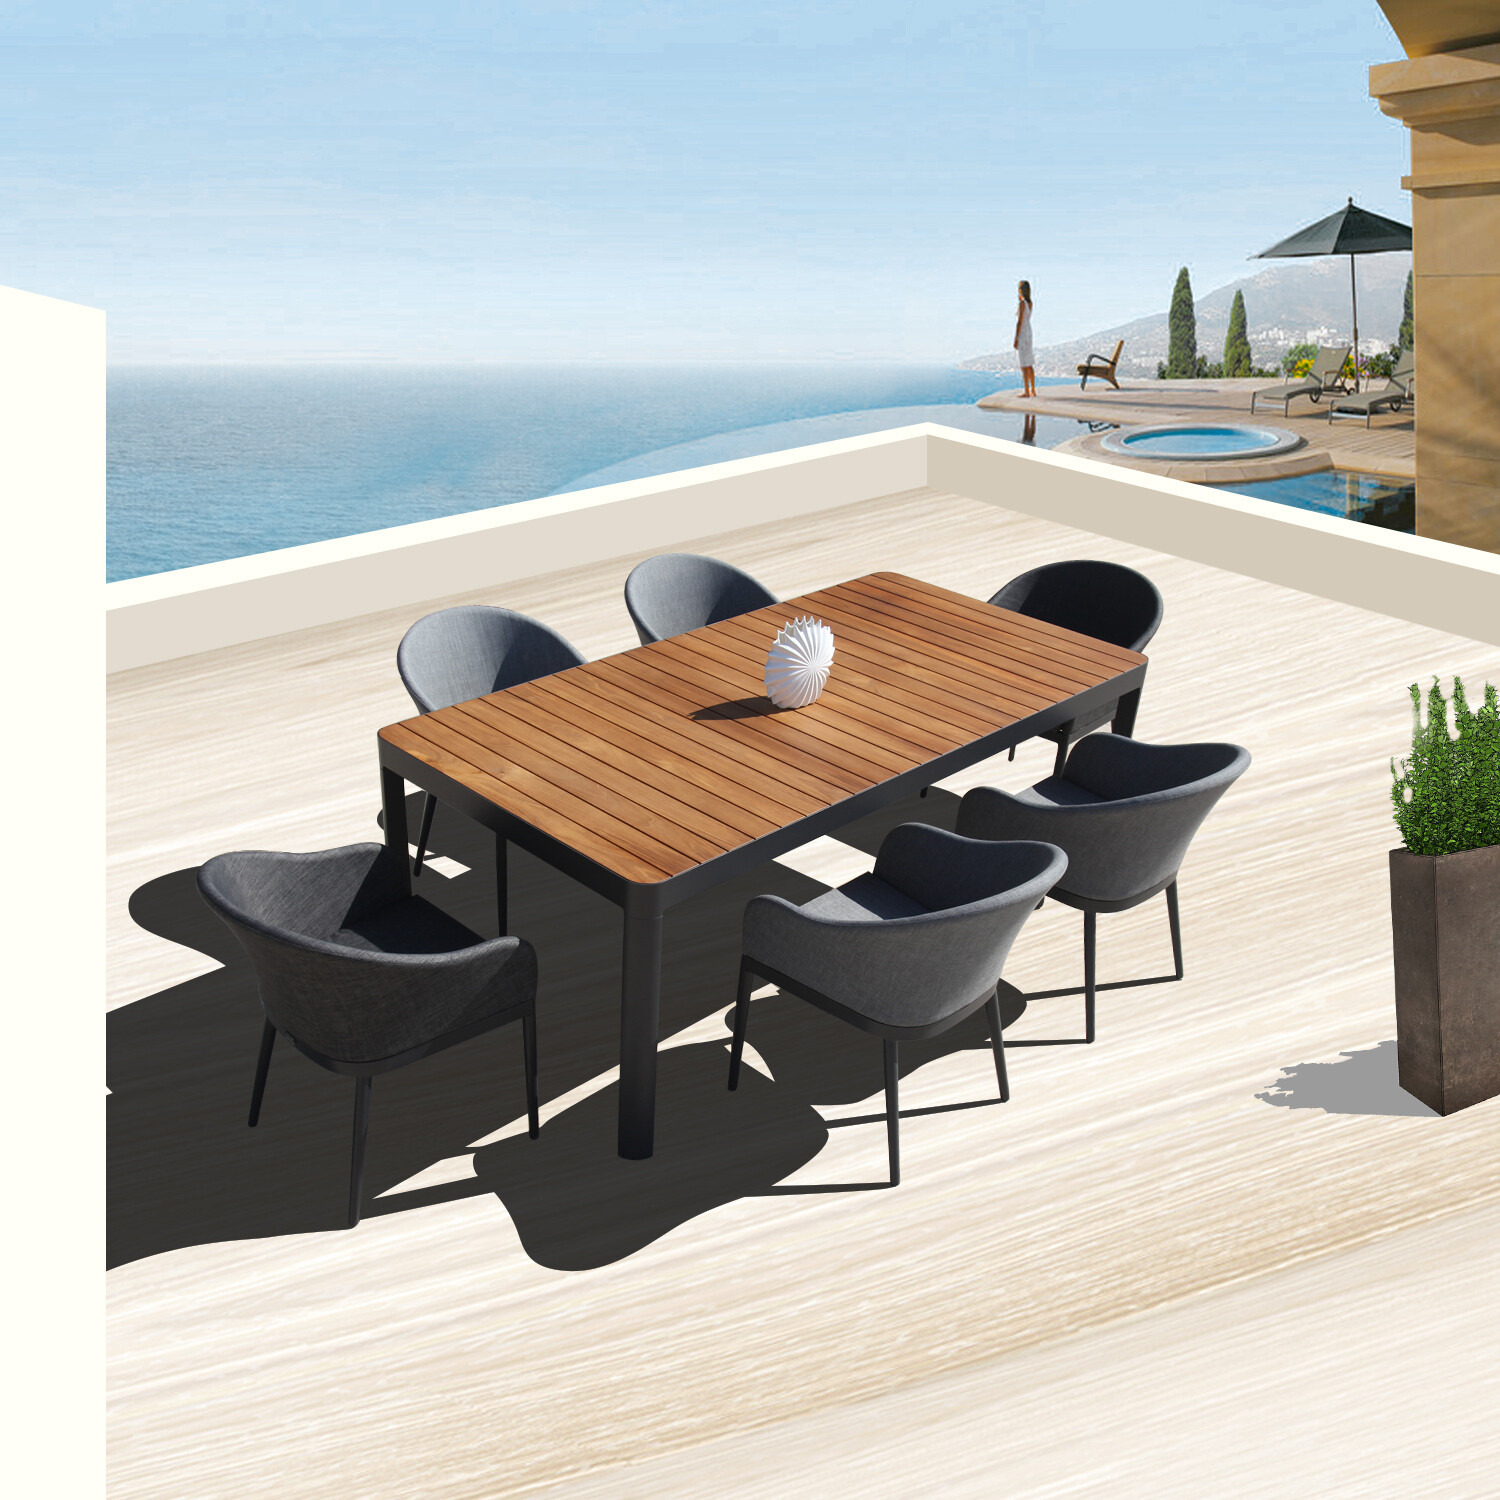 7 Piece Alminuim Table Chairs Dining Set Outdoor Patio Furniture